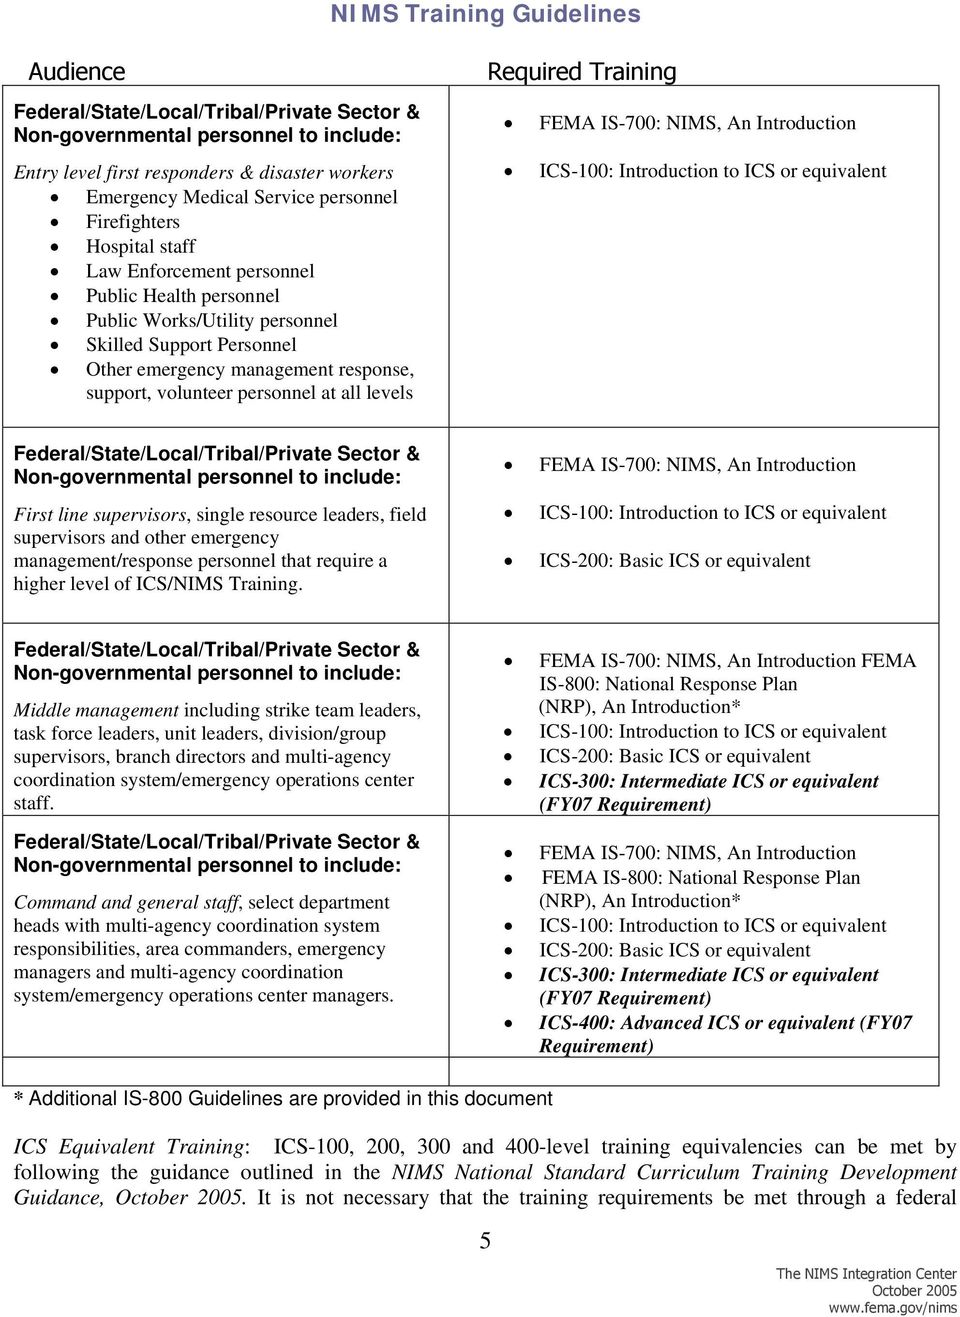 FY 2006 NIMS Training Requirements - PDF